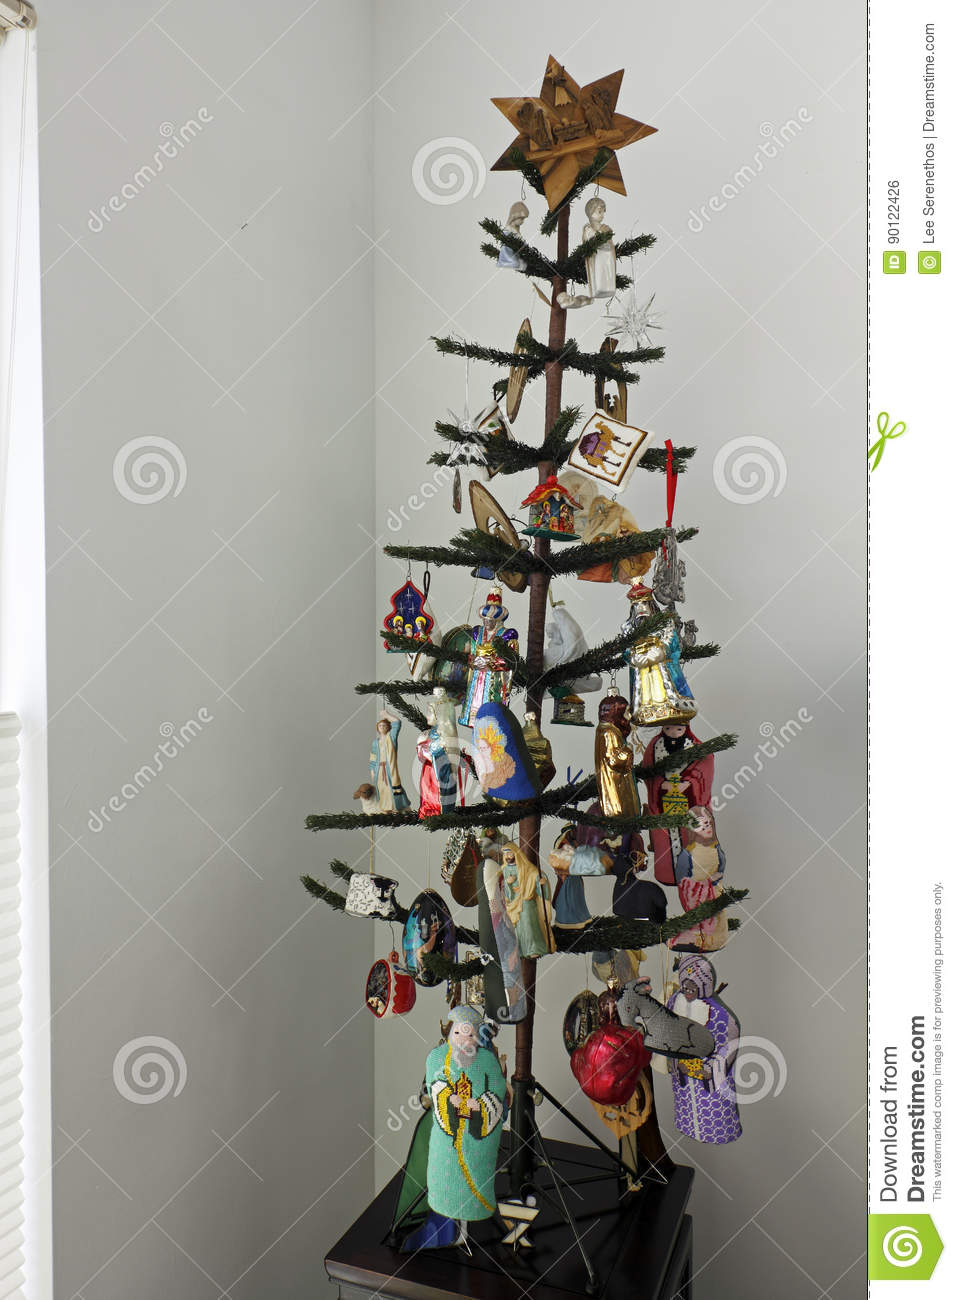 Christmas Tree with Nativity Theme Ornaments